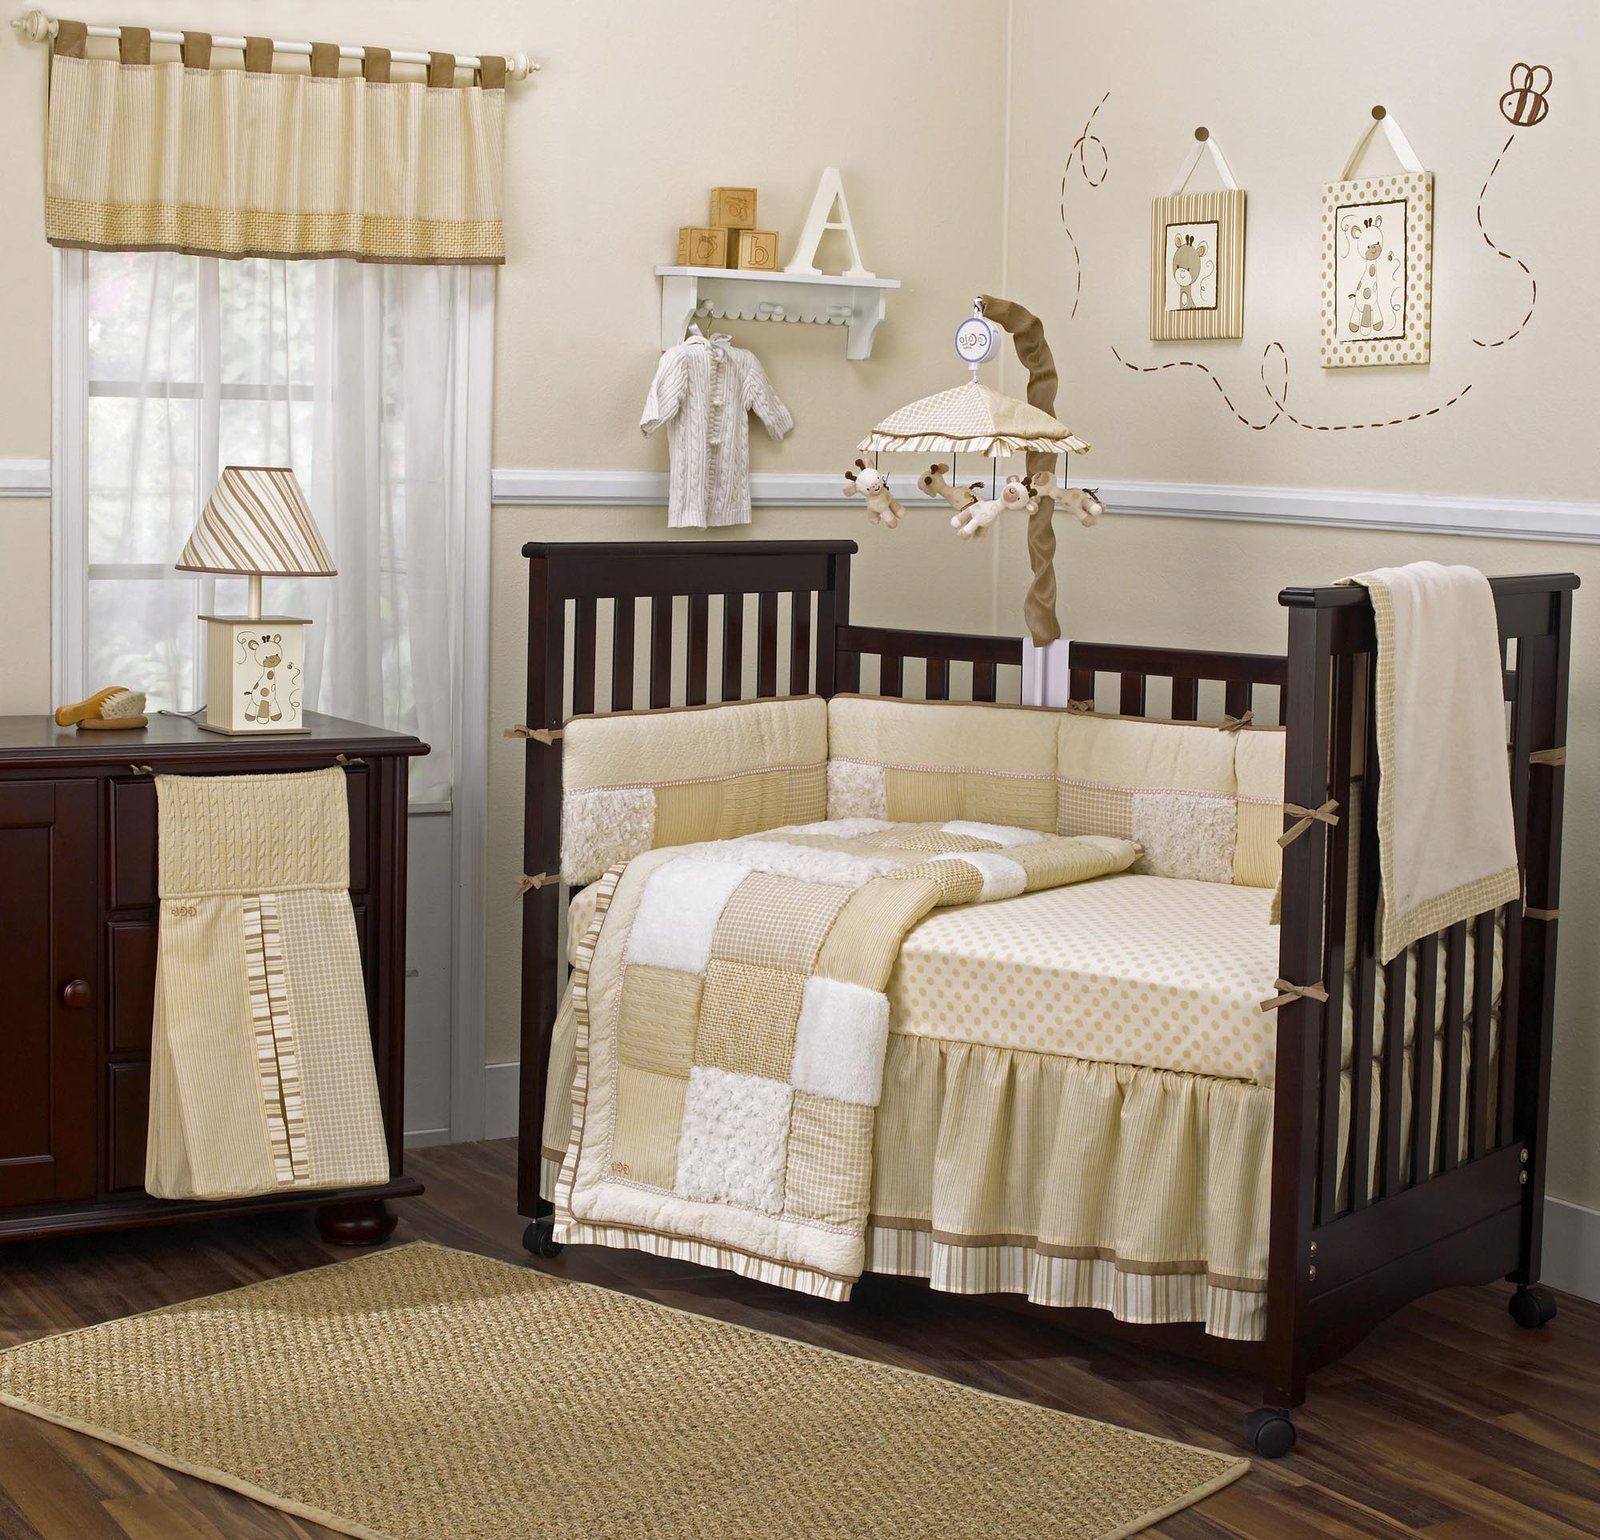 Twin Baby Boy Bedroom Ideas Trendy Bedroom Lighting Bedroom Color Ideas Pinterest Murphy Bed Bedroom Ideas: Bedroom , Welcoming The Birth Of All Baby Genders With